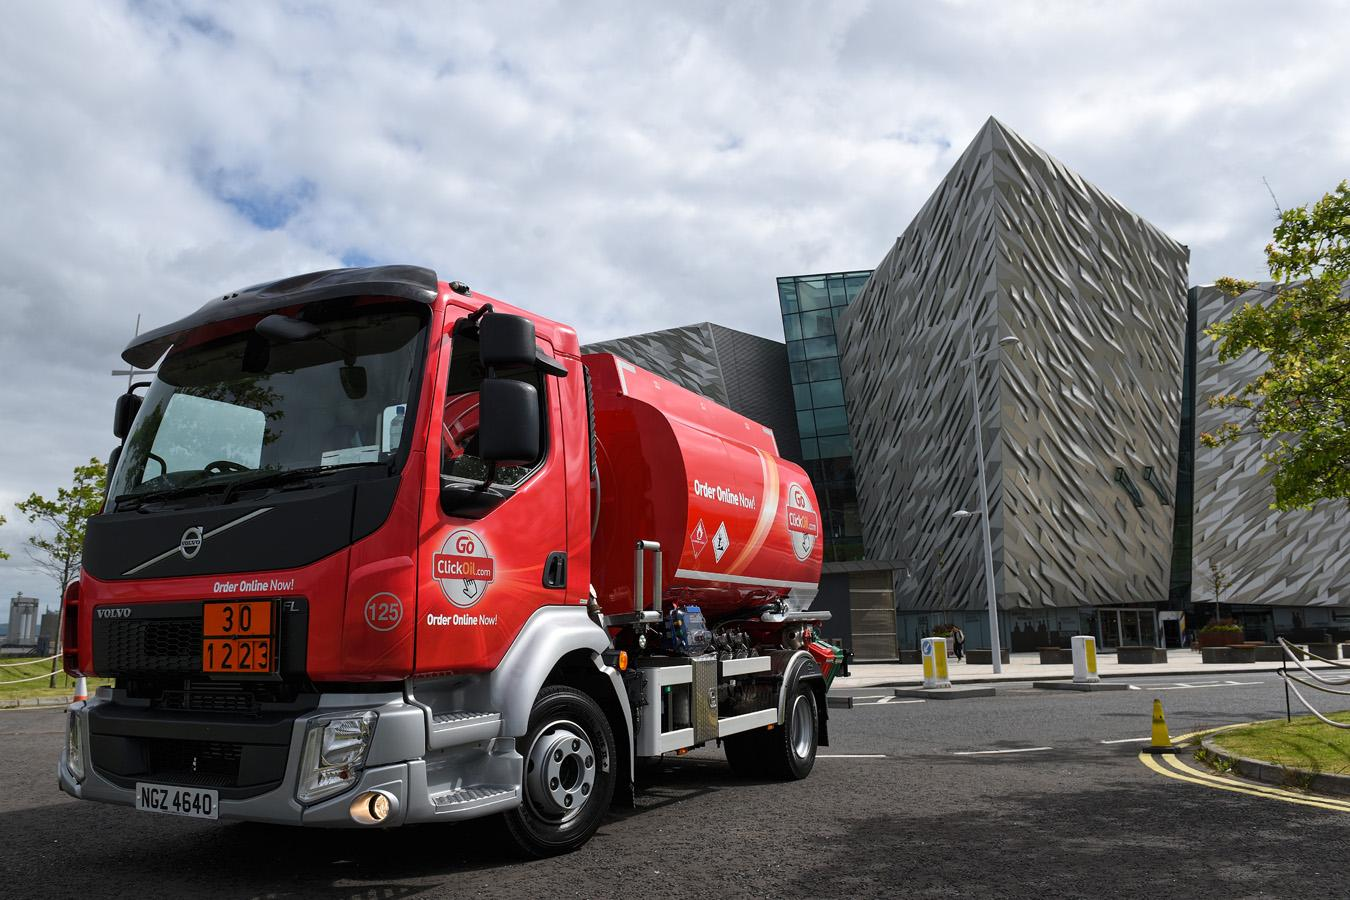 ClickOil.com delivery truck outside Titanic Belfast.